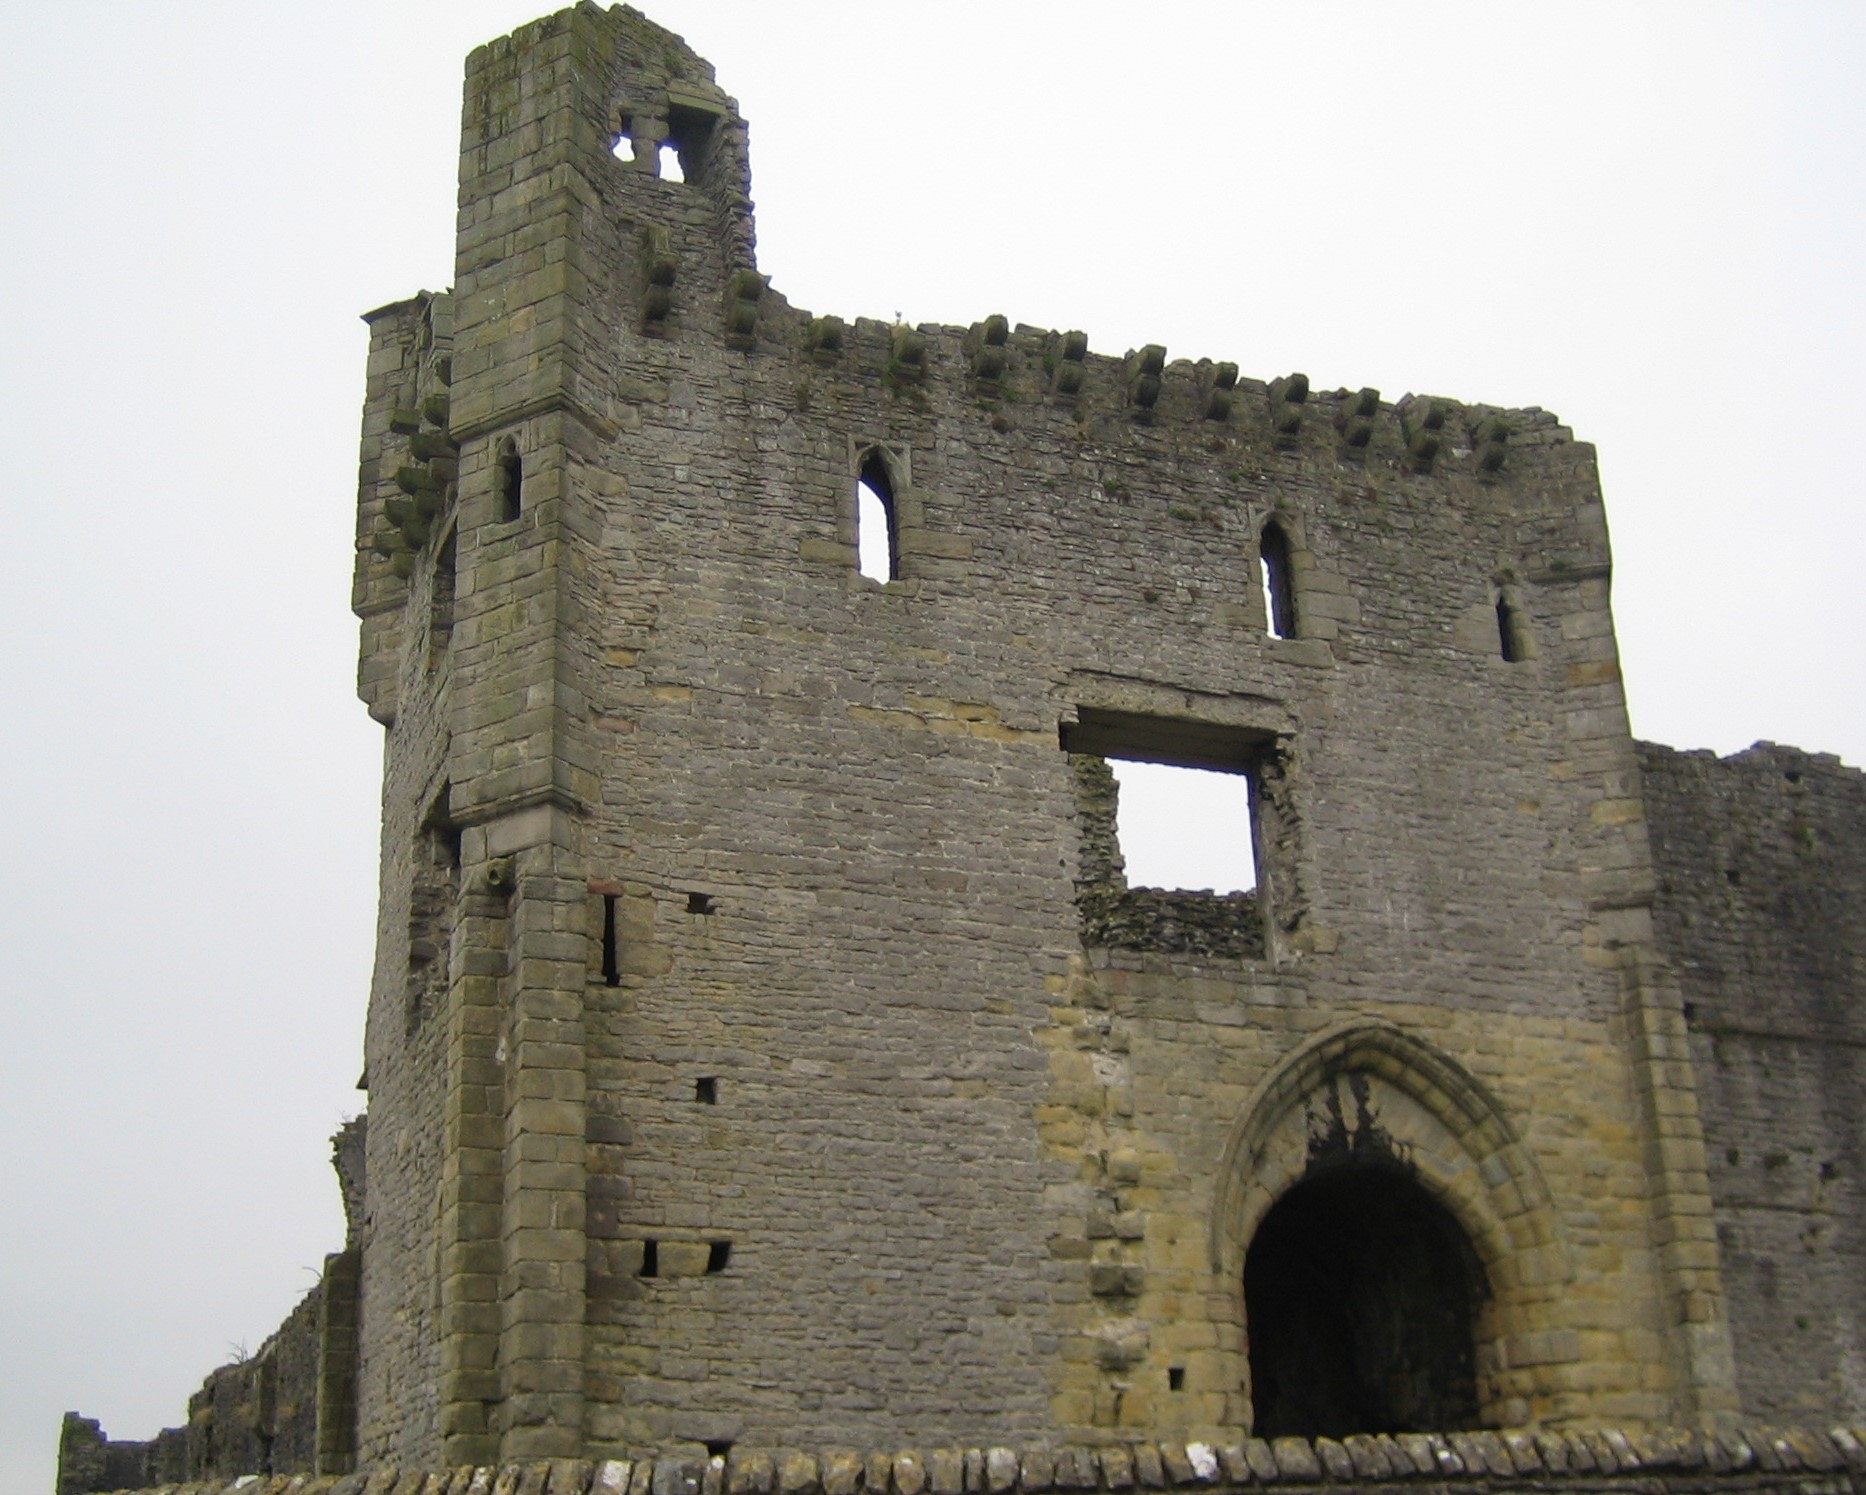 North East Tower of Middleham Castle